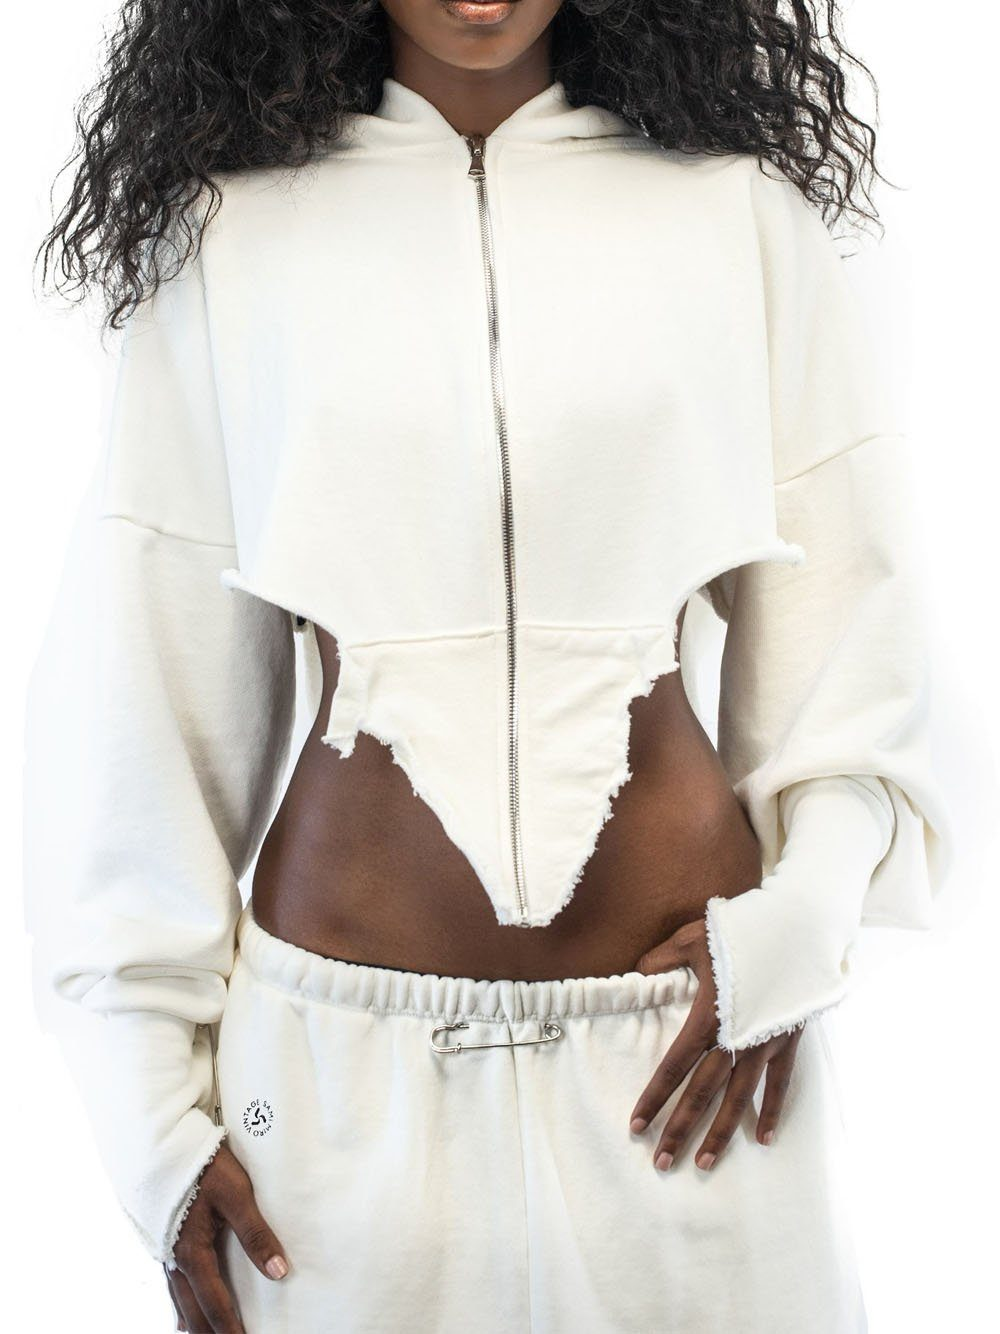 SAMI MIRO VINTAGE V-Cut Zip Up Hoodie White